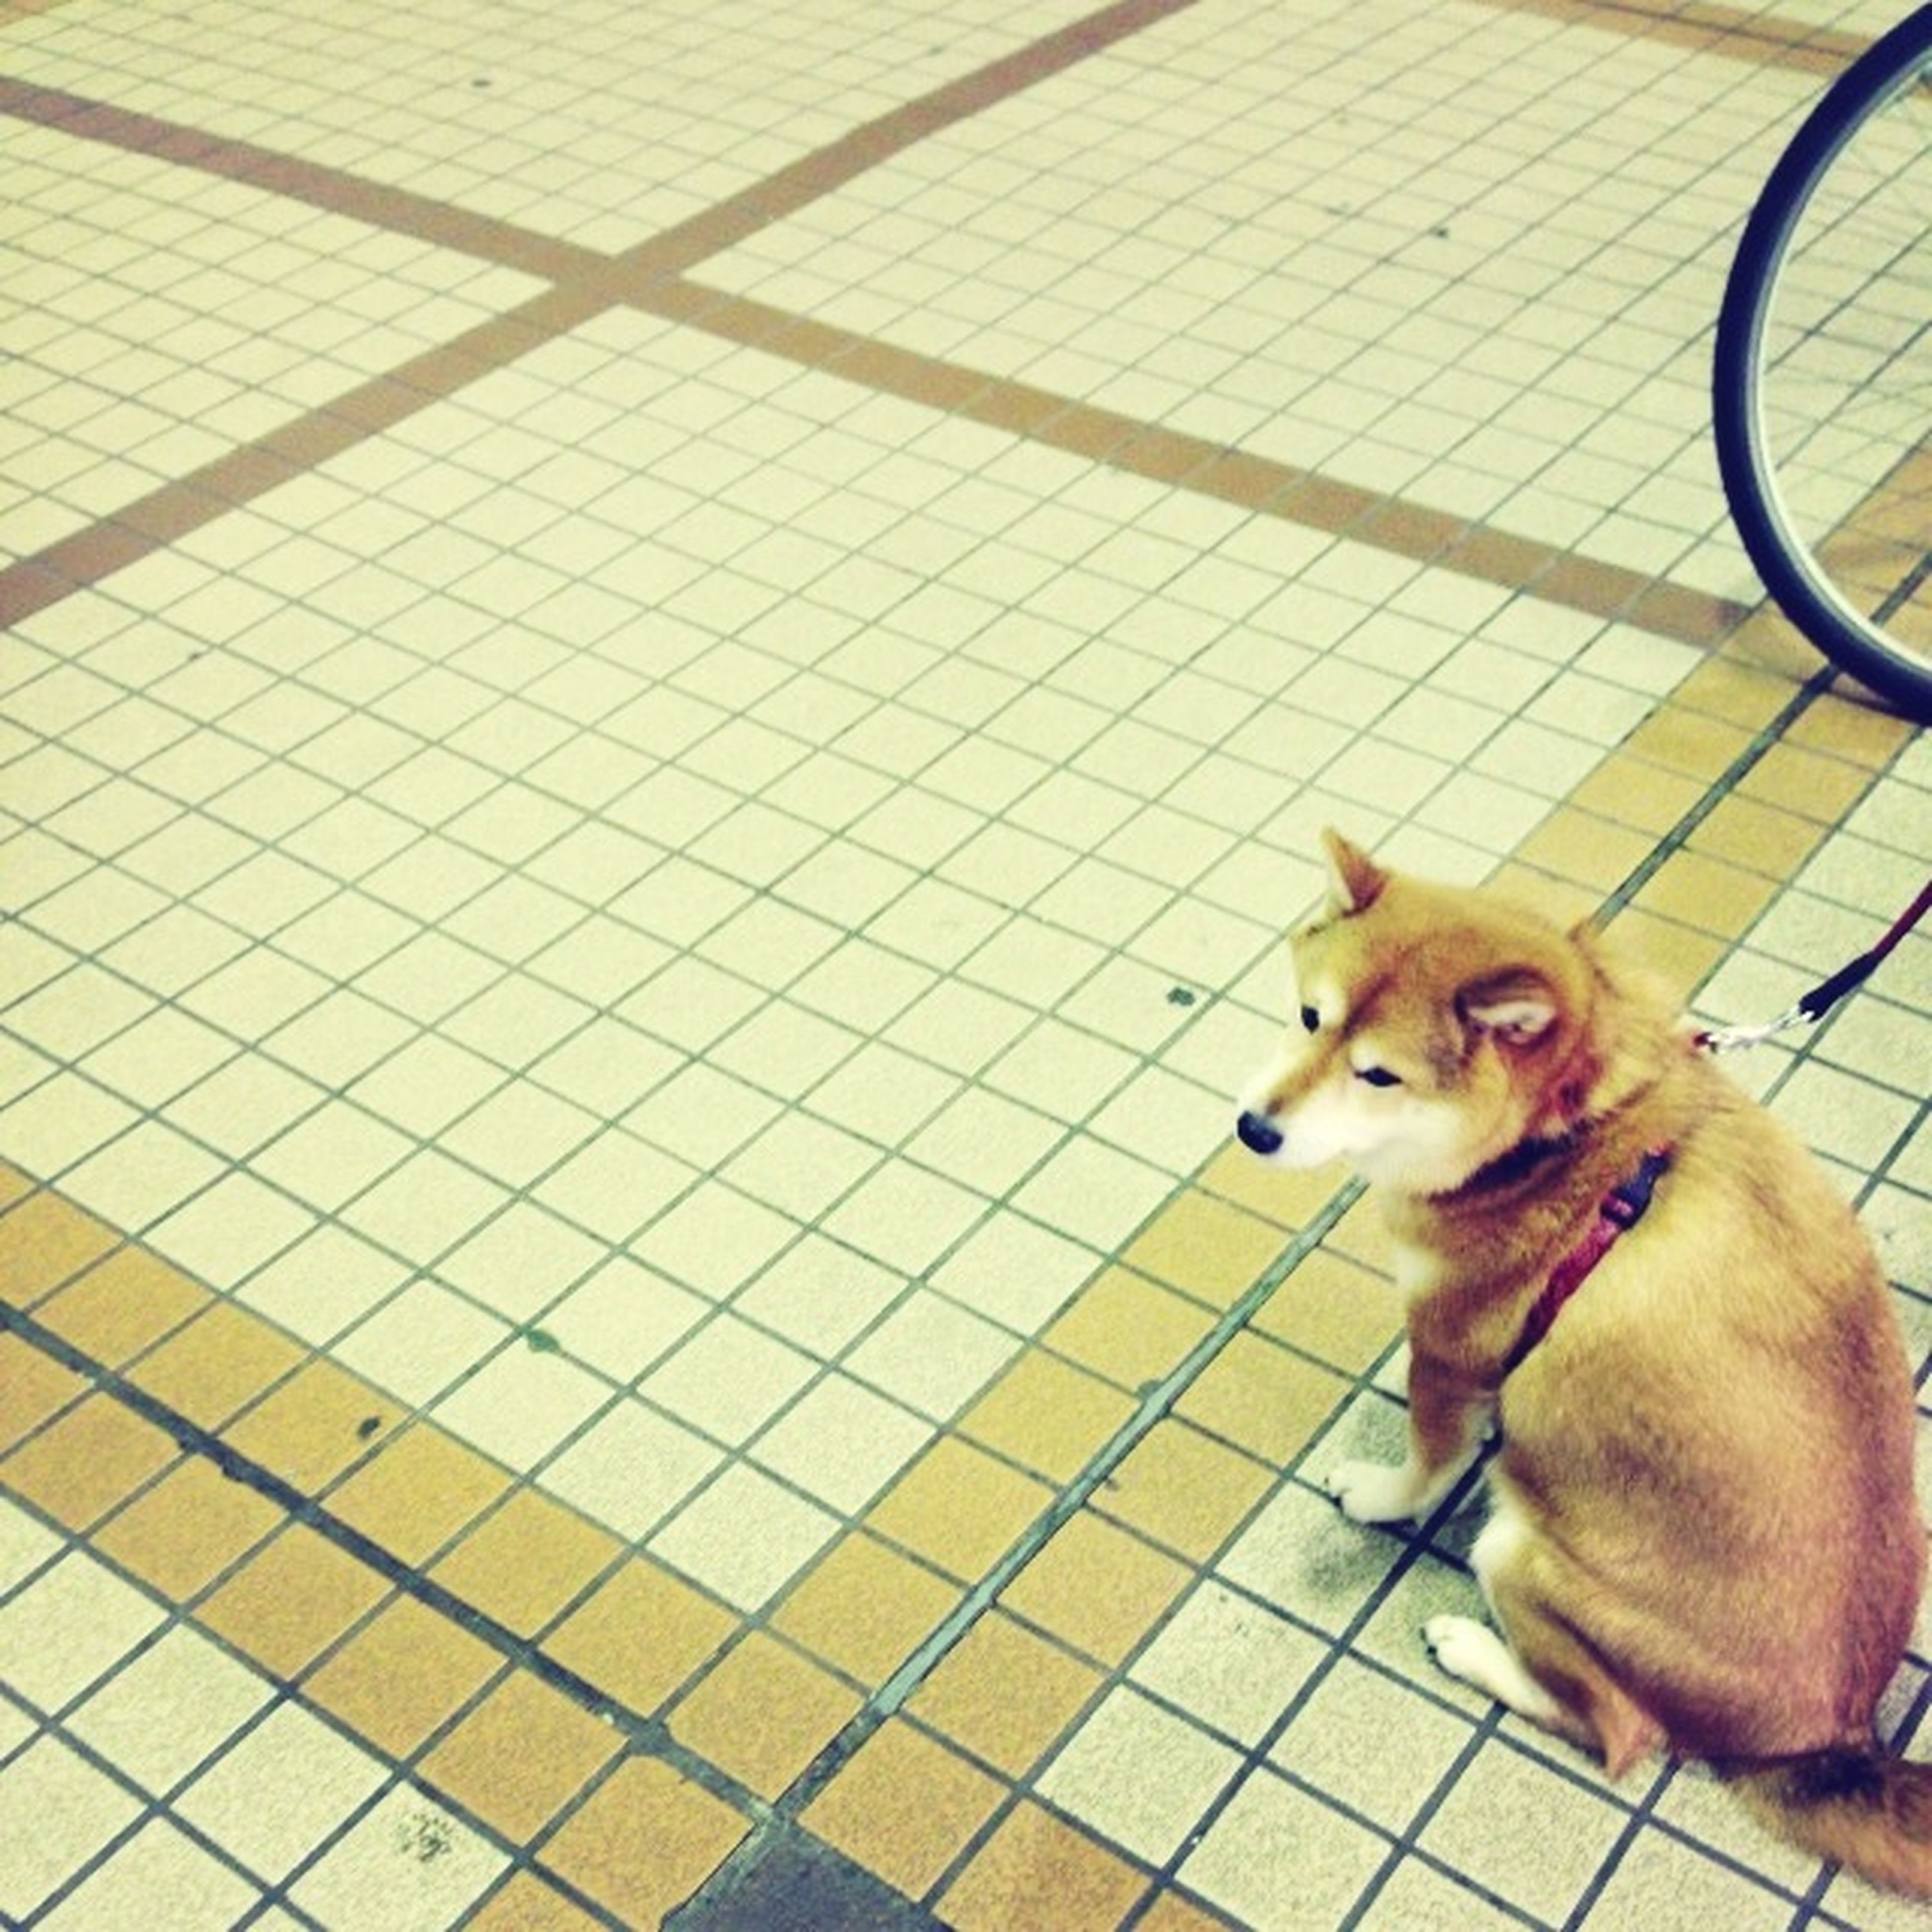 pets, domestic animals, animal themes, dog, mammal, one animal, indoors, high angle view, flooring, sitting, no people, tiled floor, portrait, relaxation, cage, day, metal, looking at camera, metal grate, cute